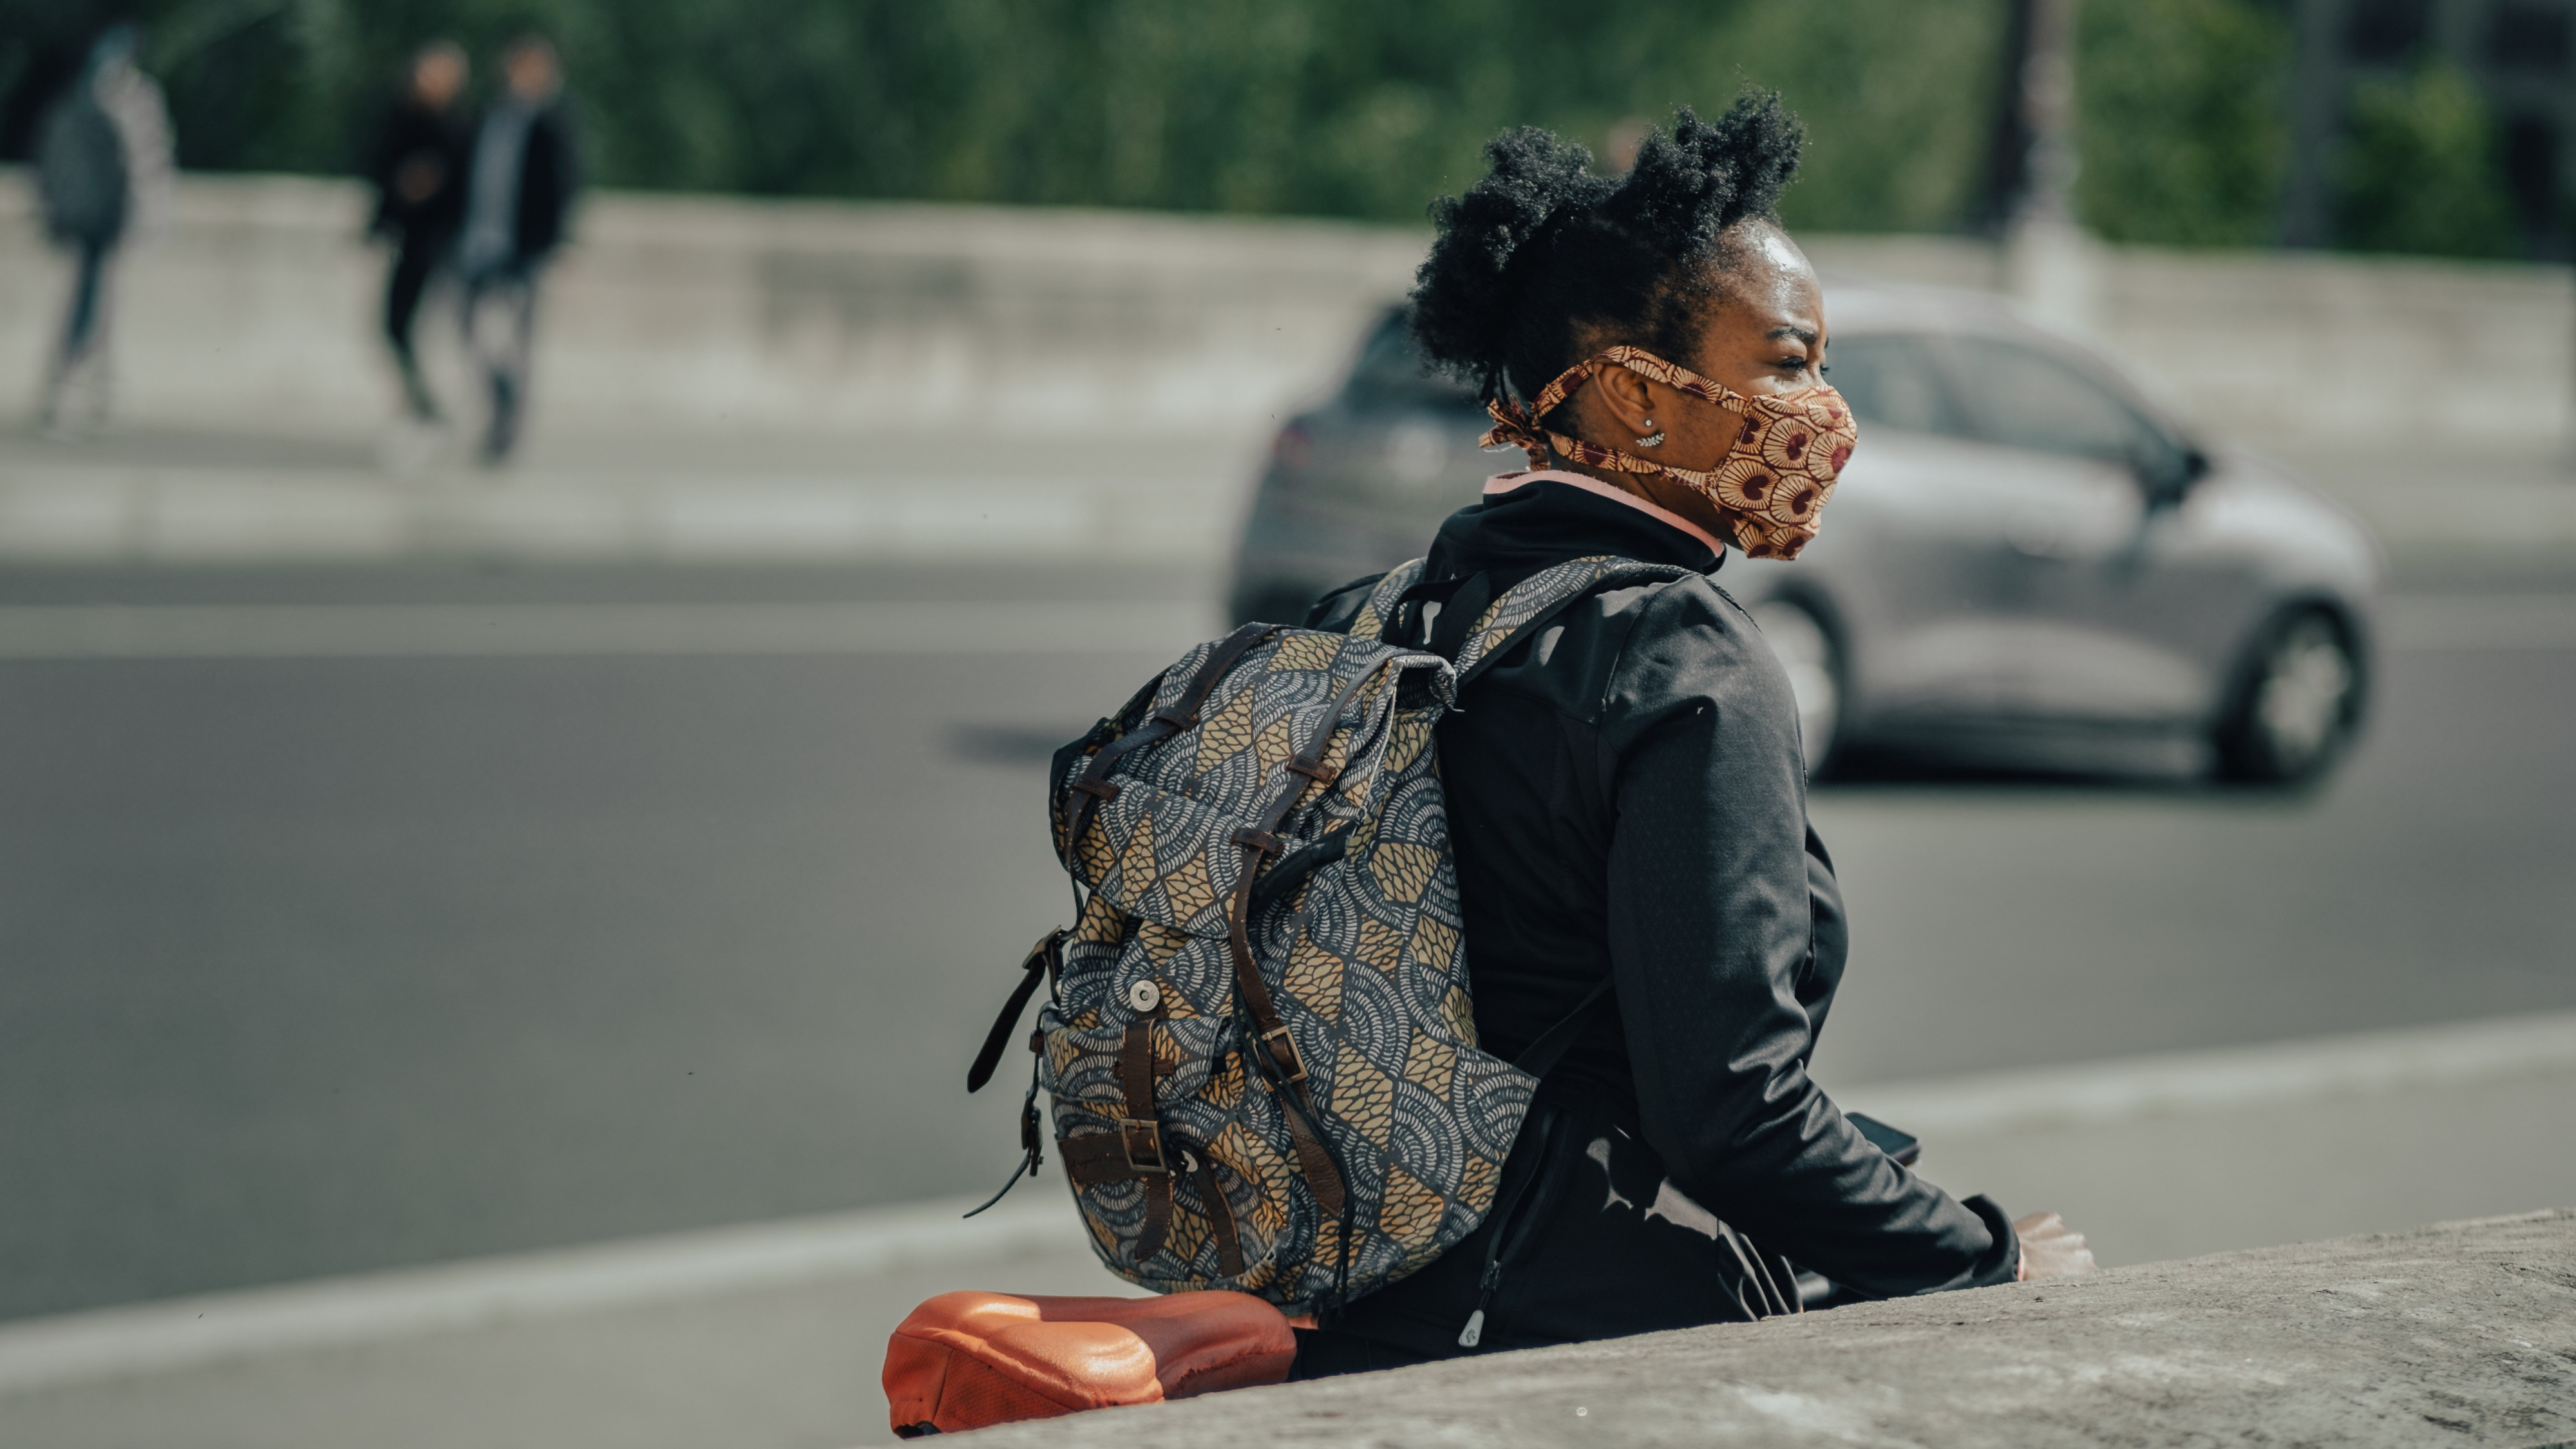 Young black woman walking in the streets with a bagpack and mask on.